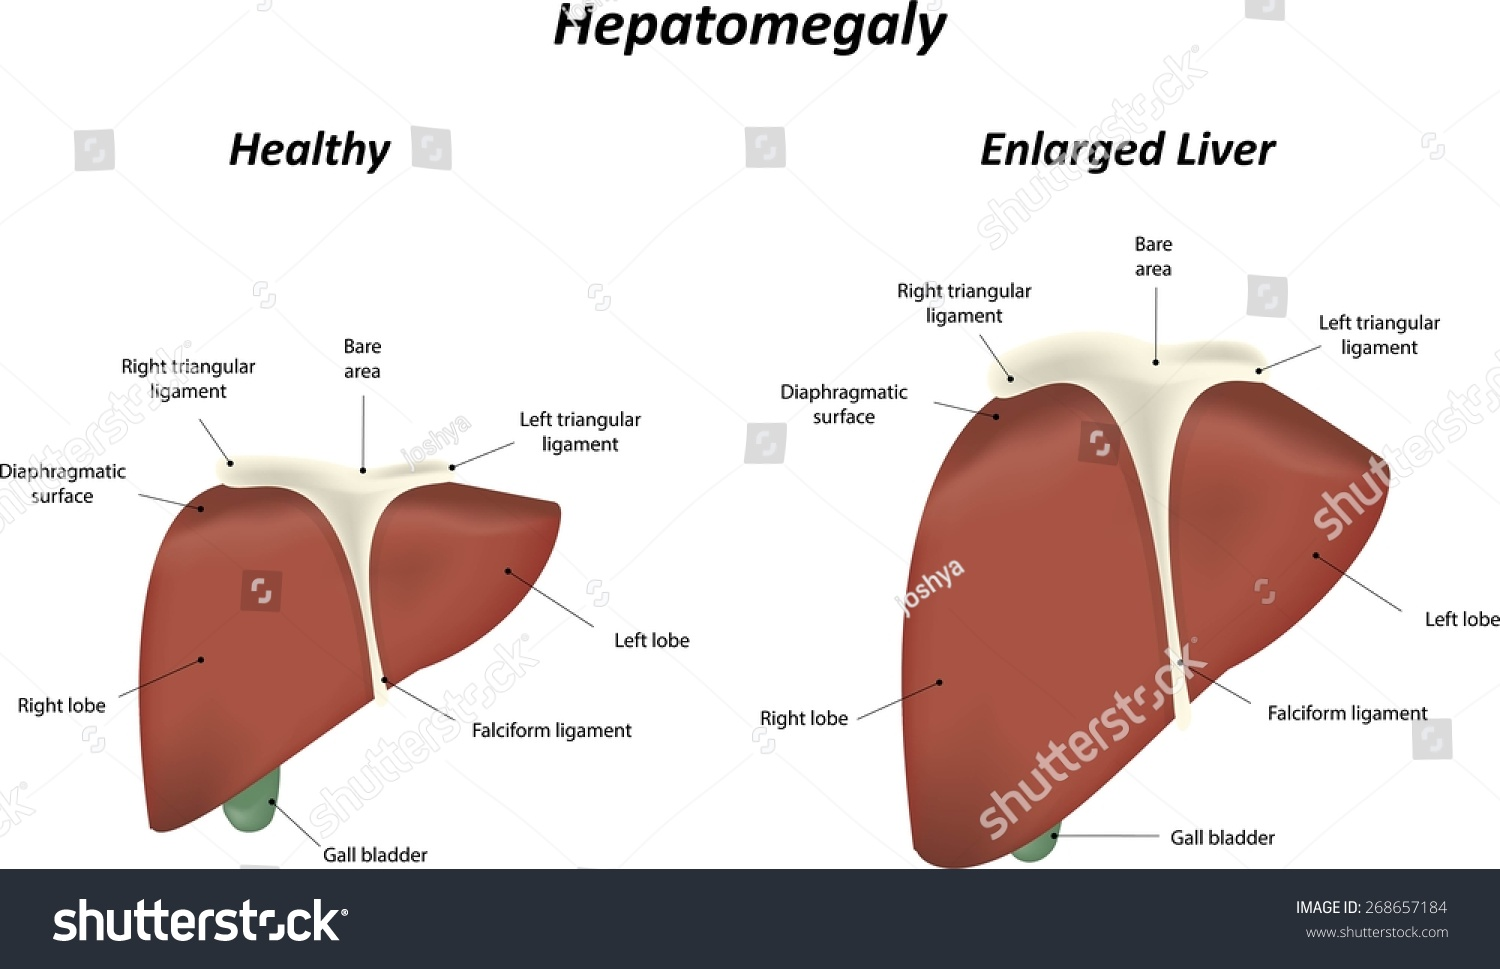 hepatomegaly enlarged liver stock vector 268657184 - shutterstock, Skeleton